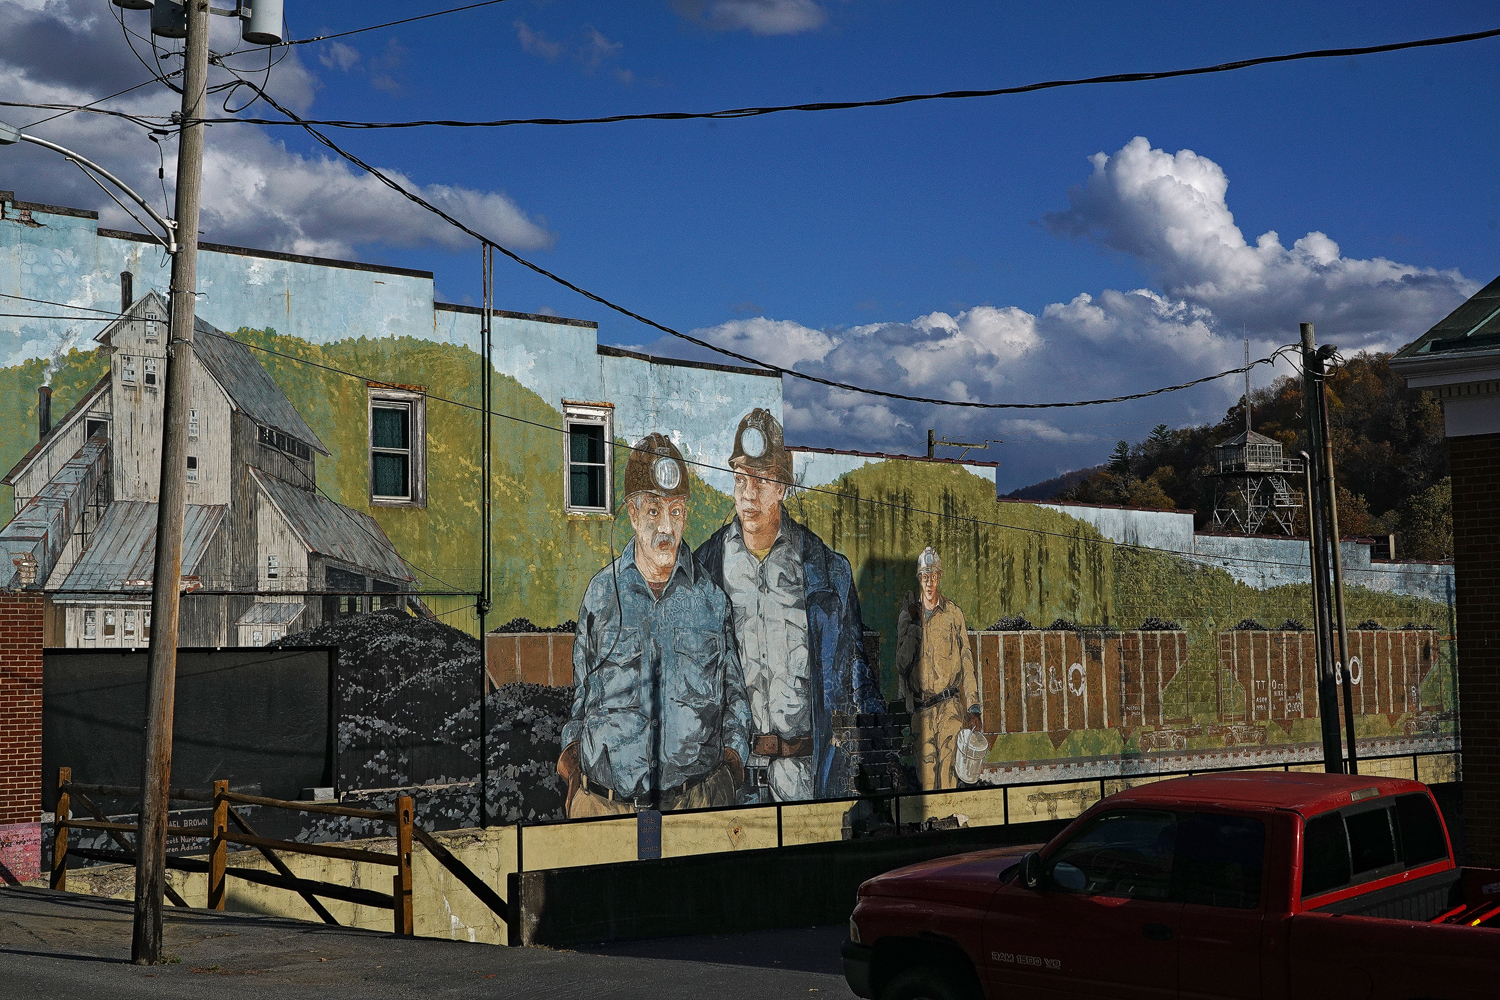 mural richwood wv author sava gregory and verena